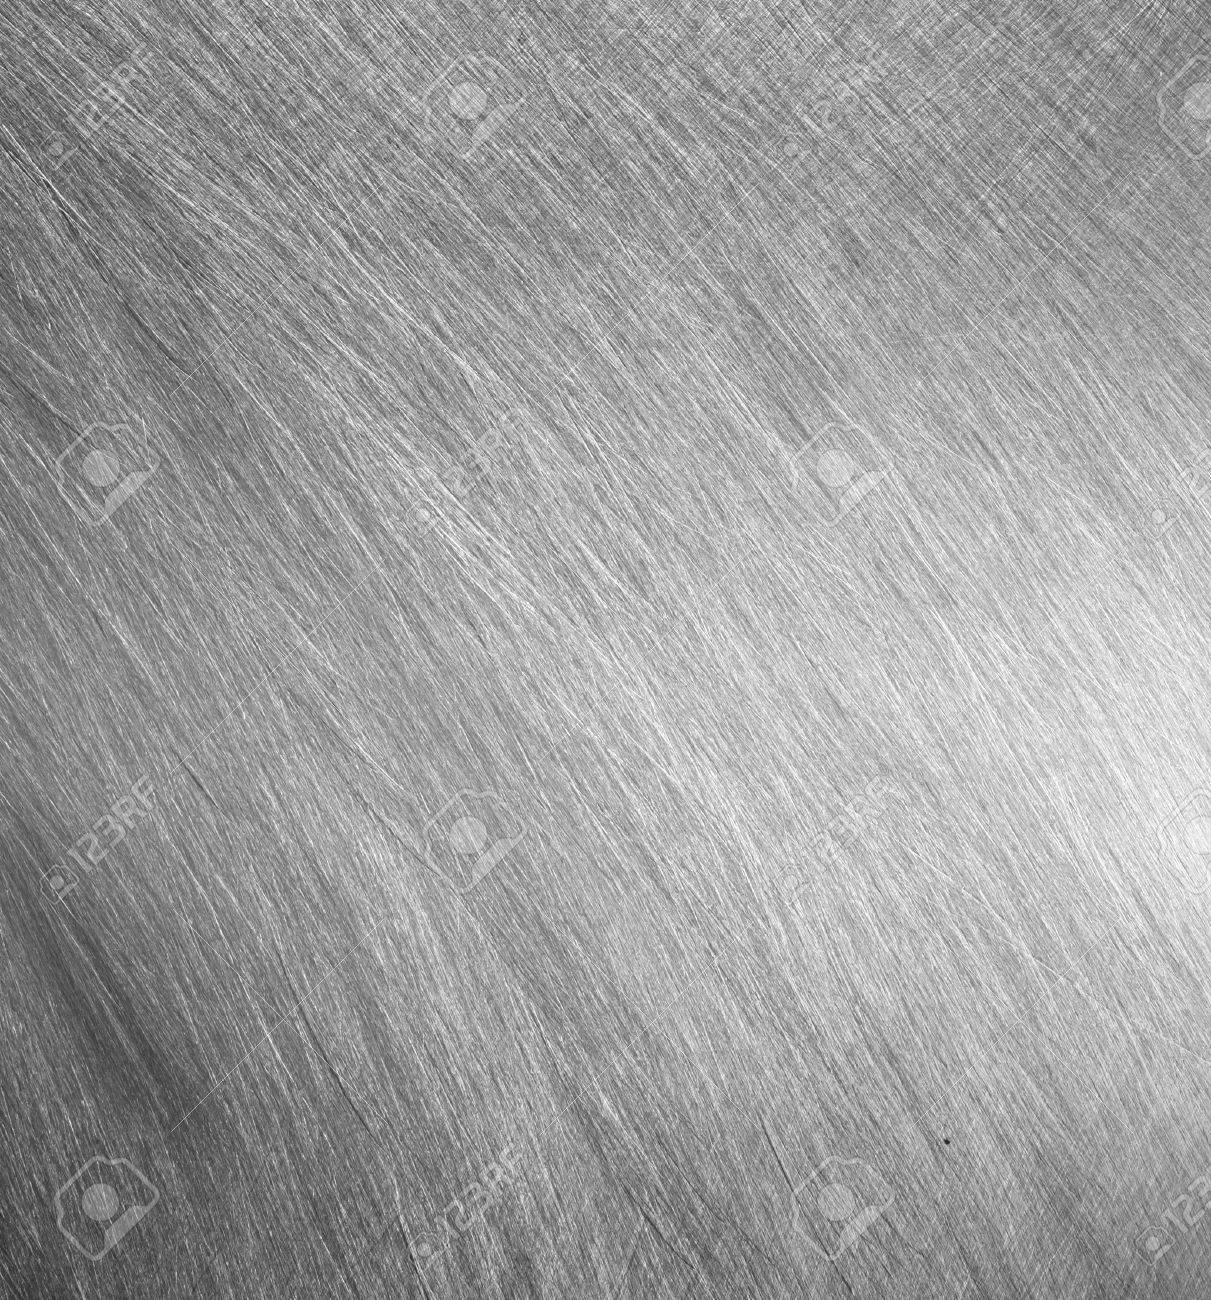 Sheet Metal Silver Solid Black Background Industry Stock Photo